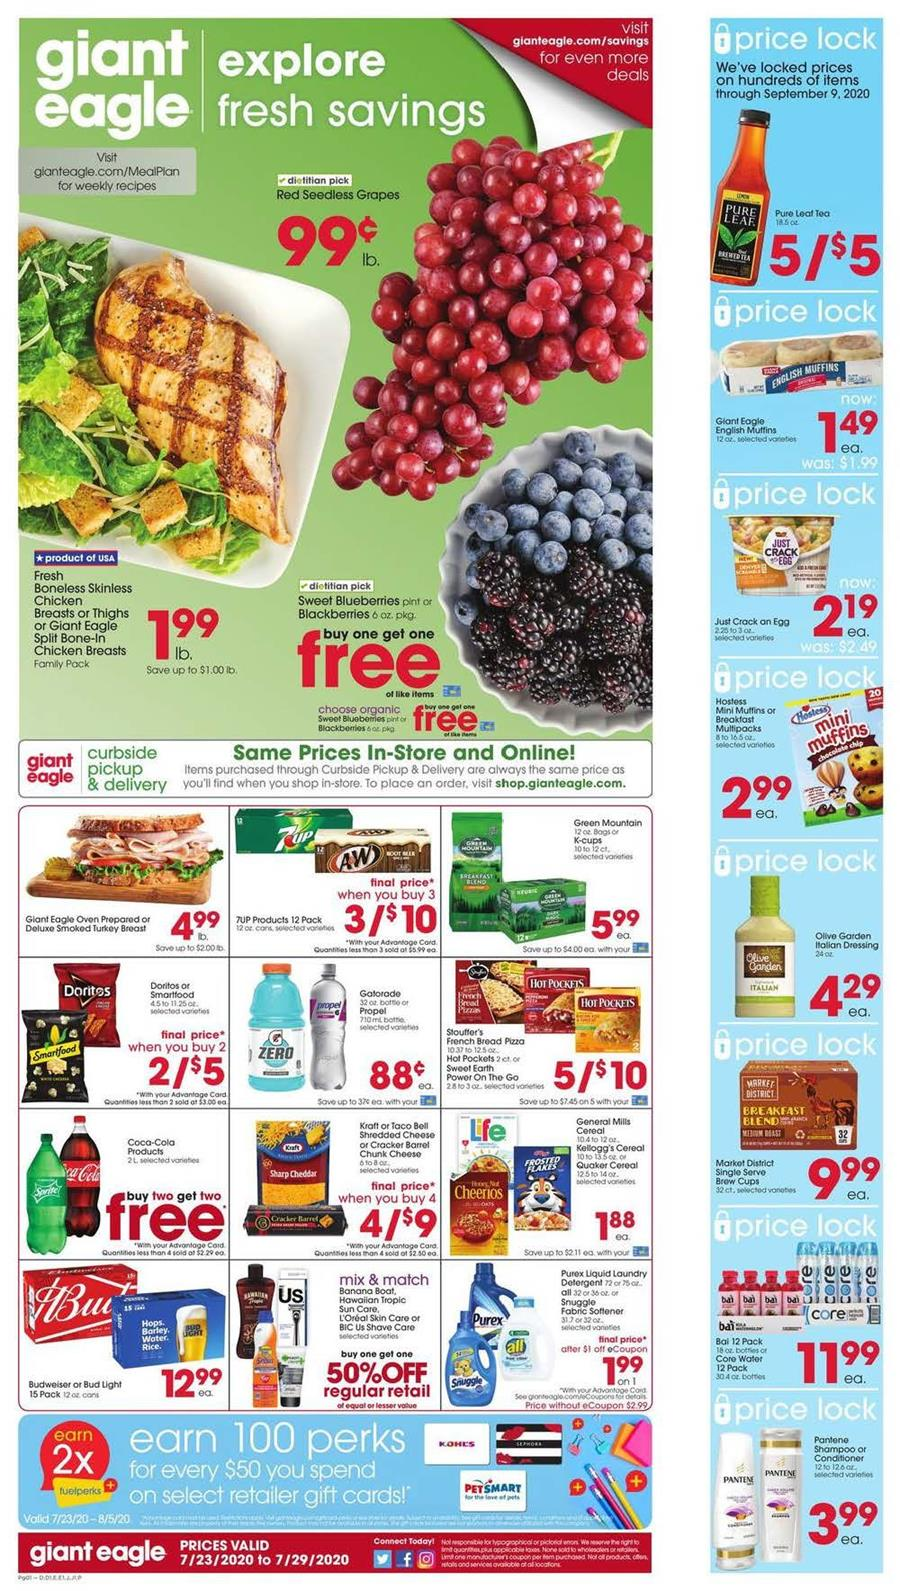 giant eagle final july weekly ad valid from jul 23 29 2020